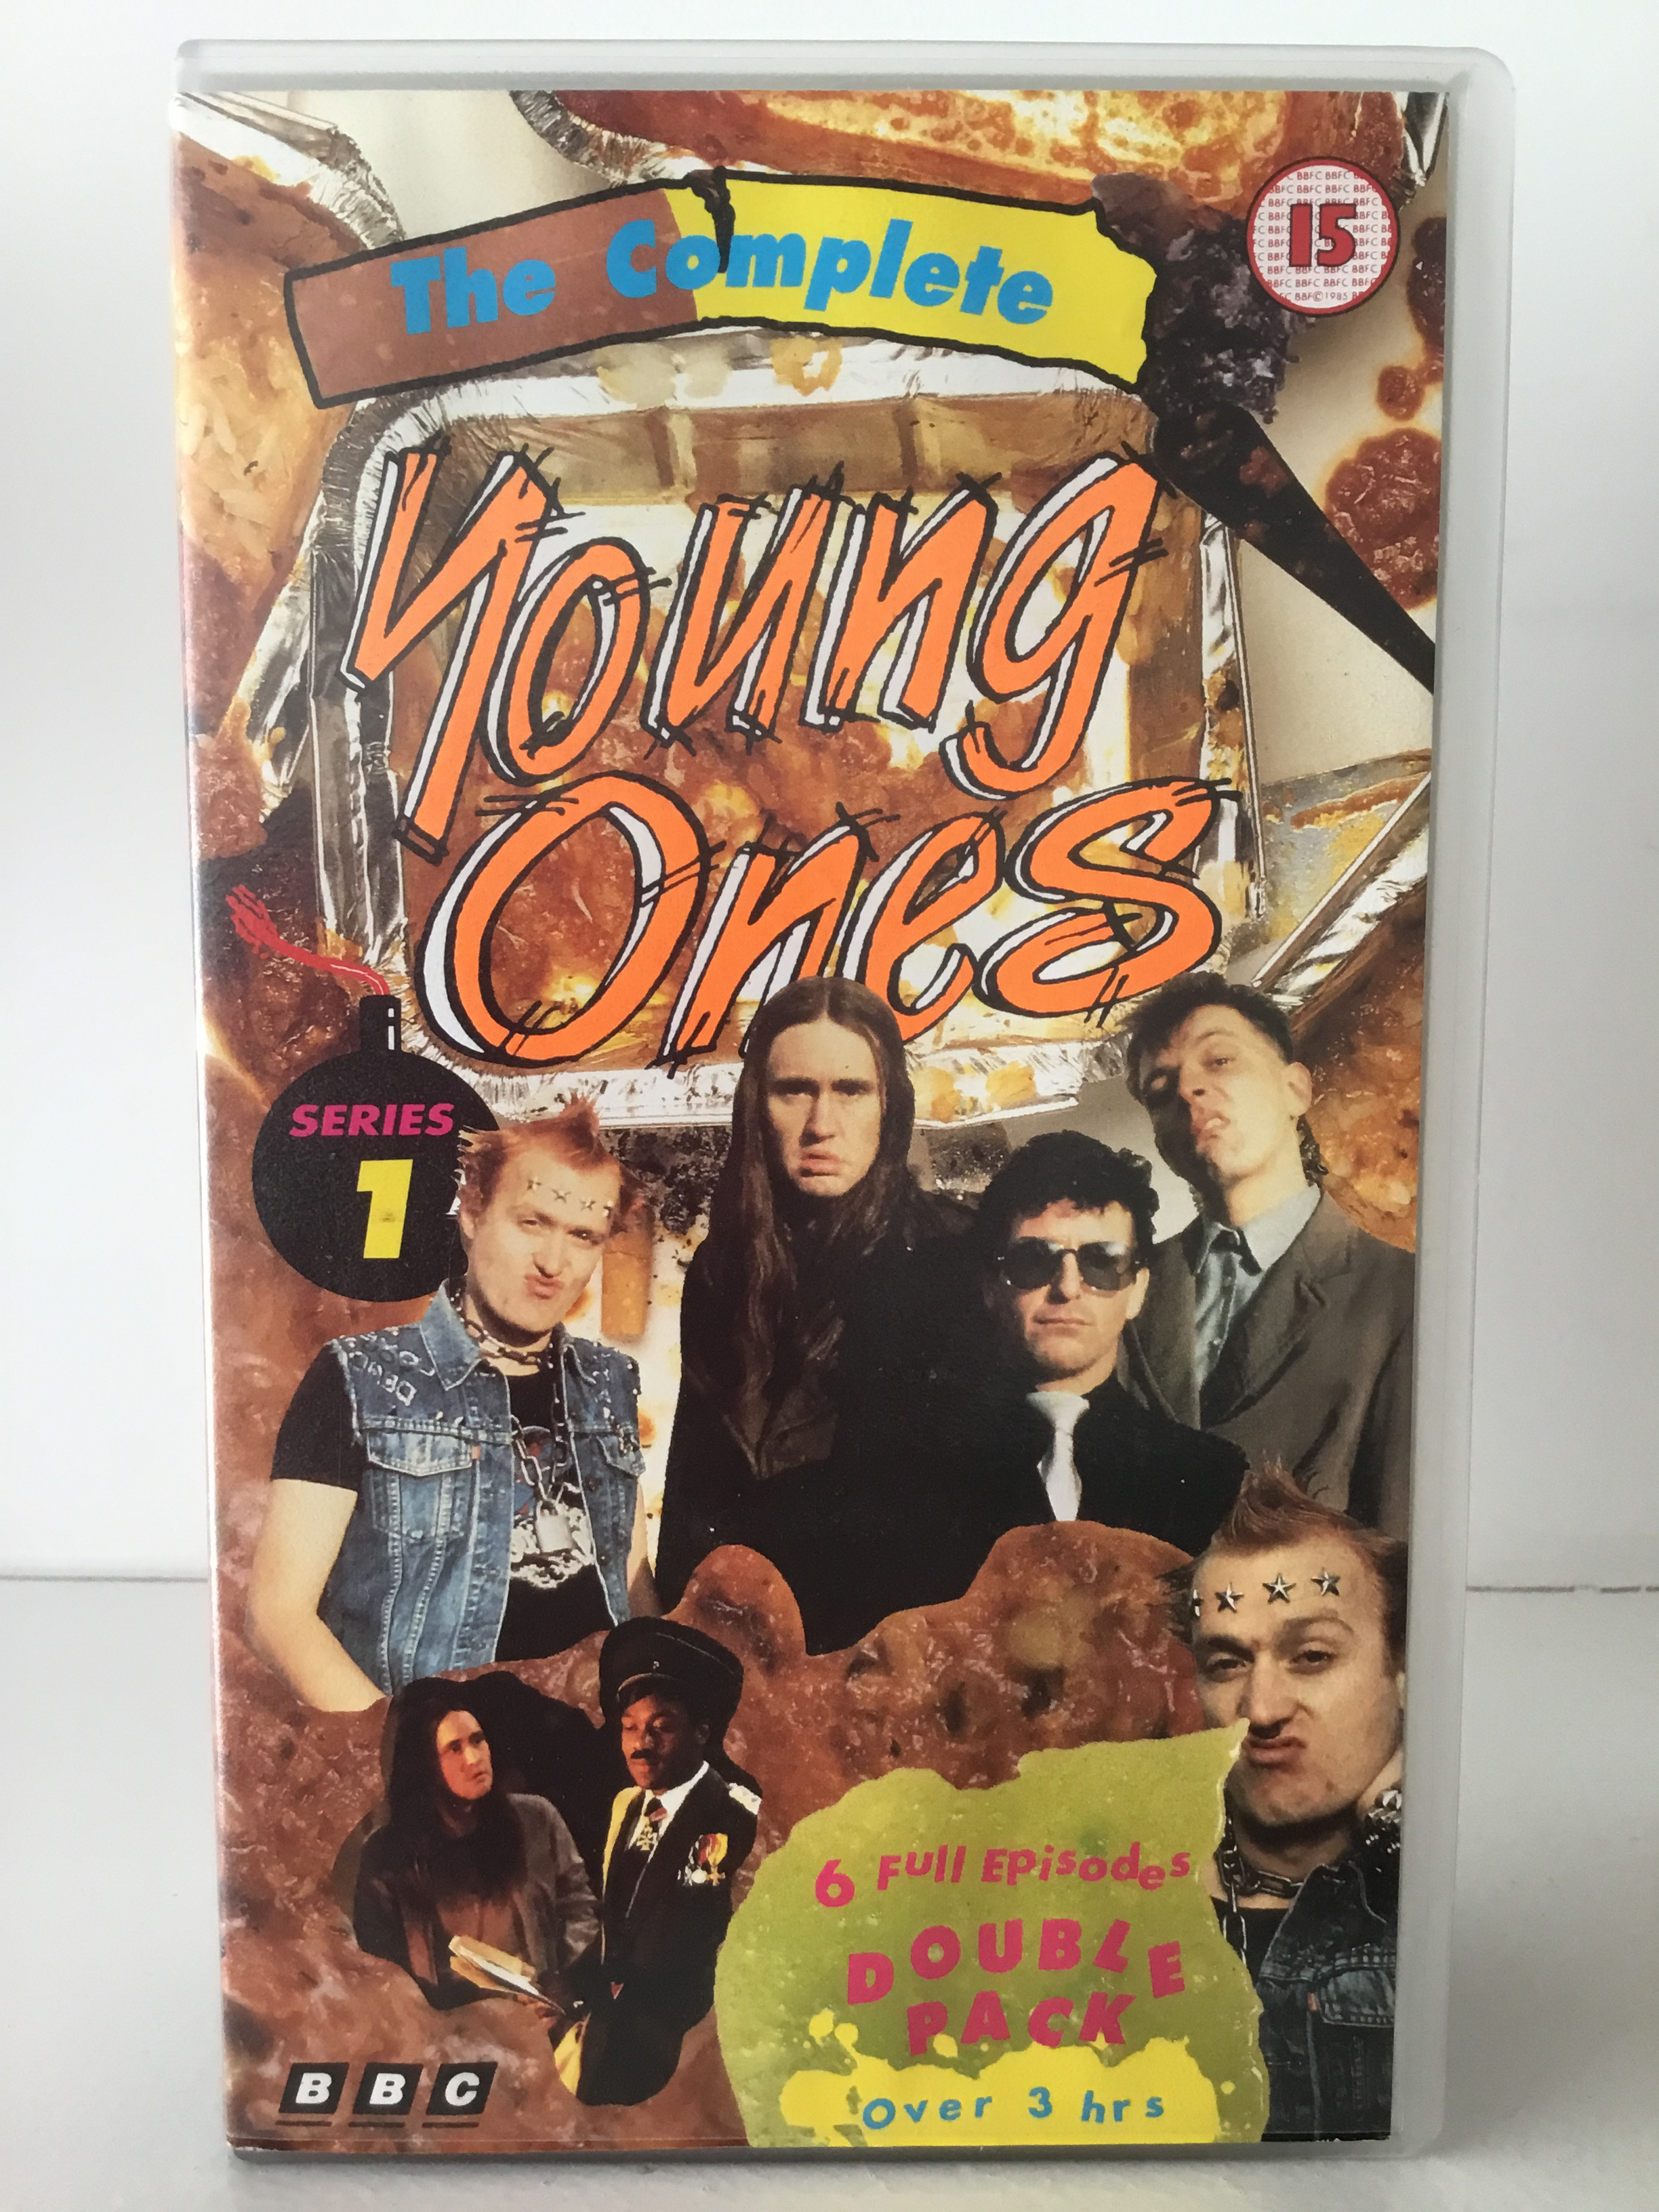 Series one double pack edition of the young ones on VHS